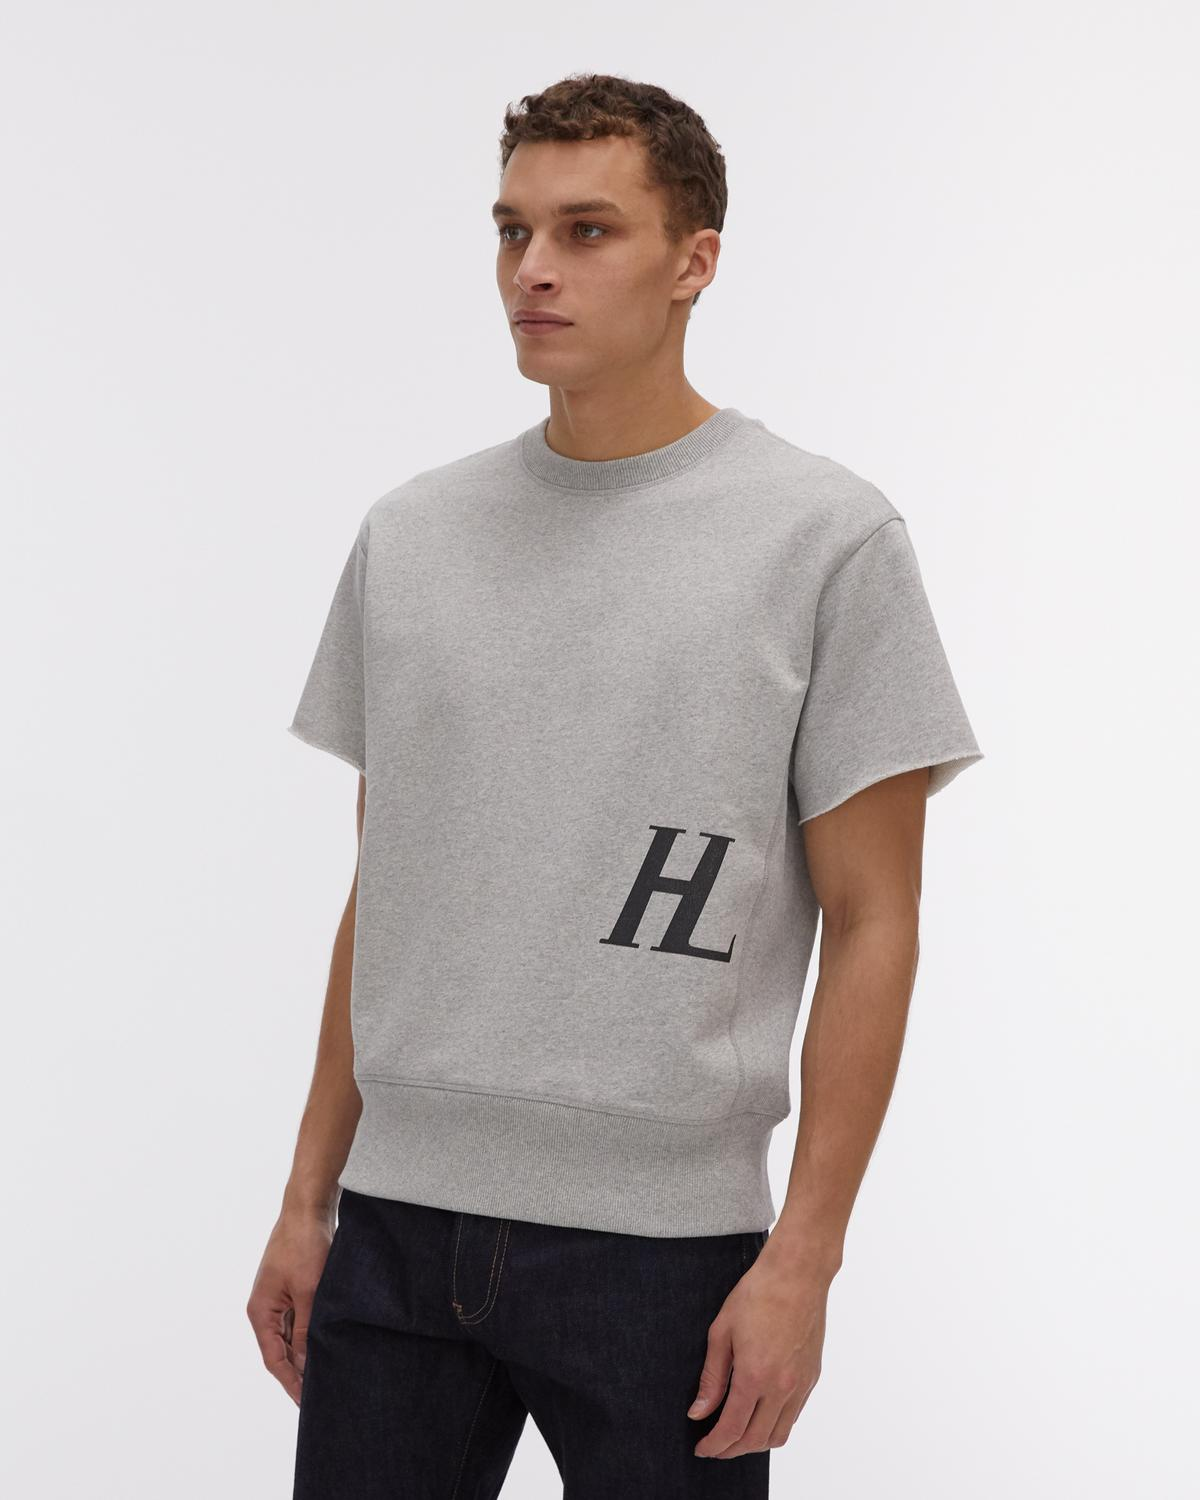 Masc Crew Monogram Short Sleeve Sweatshirt